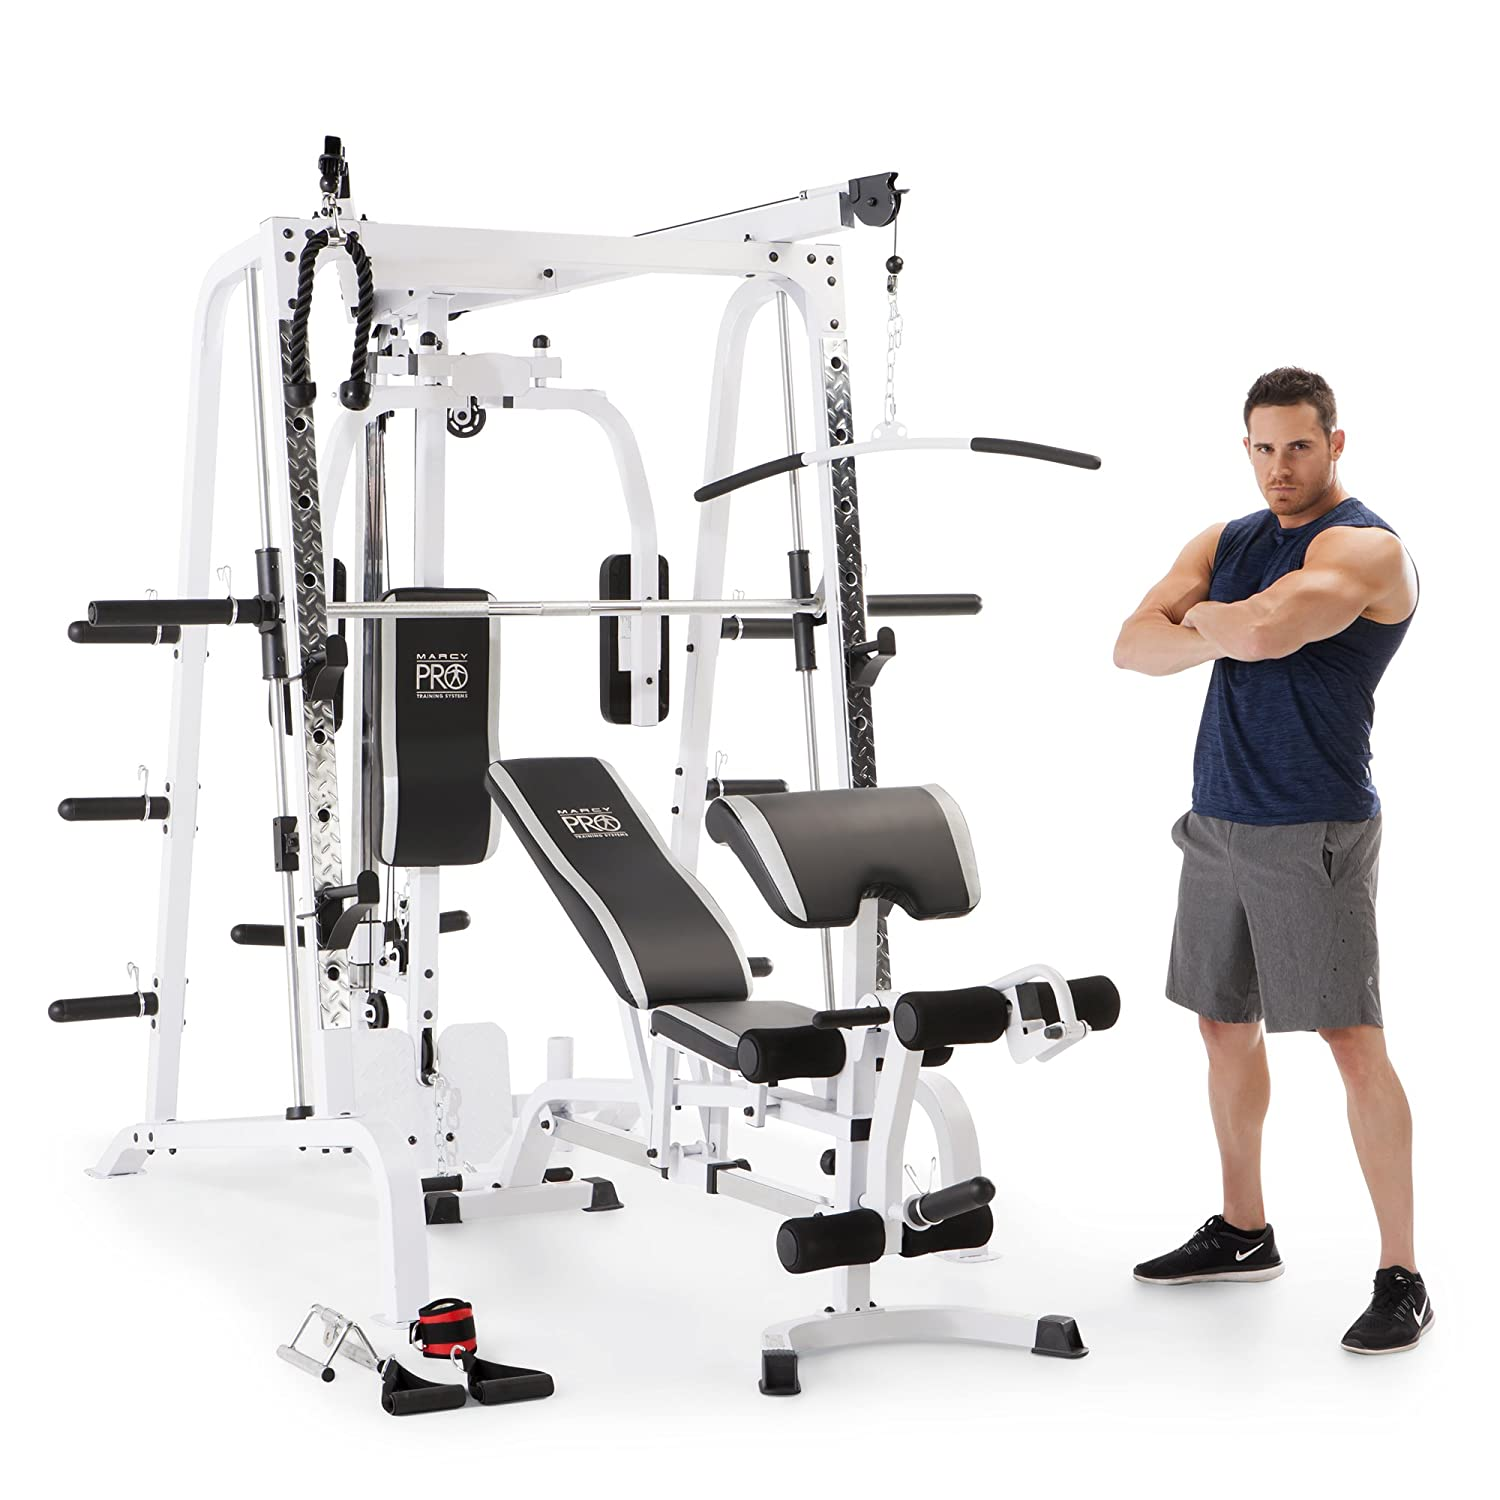 Amazon.com : Marcy Diamond Smith Cage Home Gym System : Sports & Outdoors